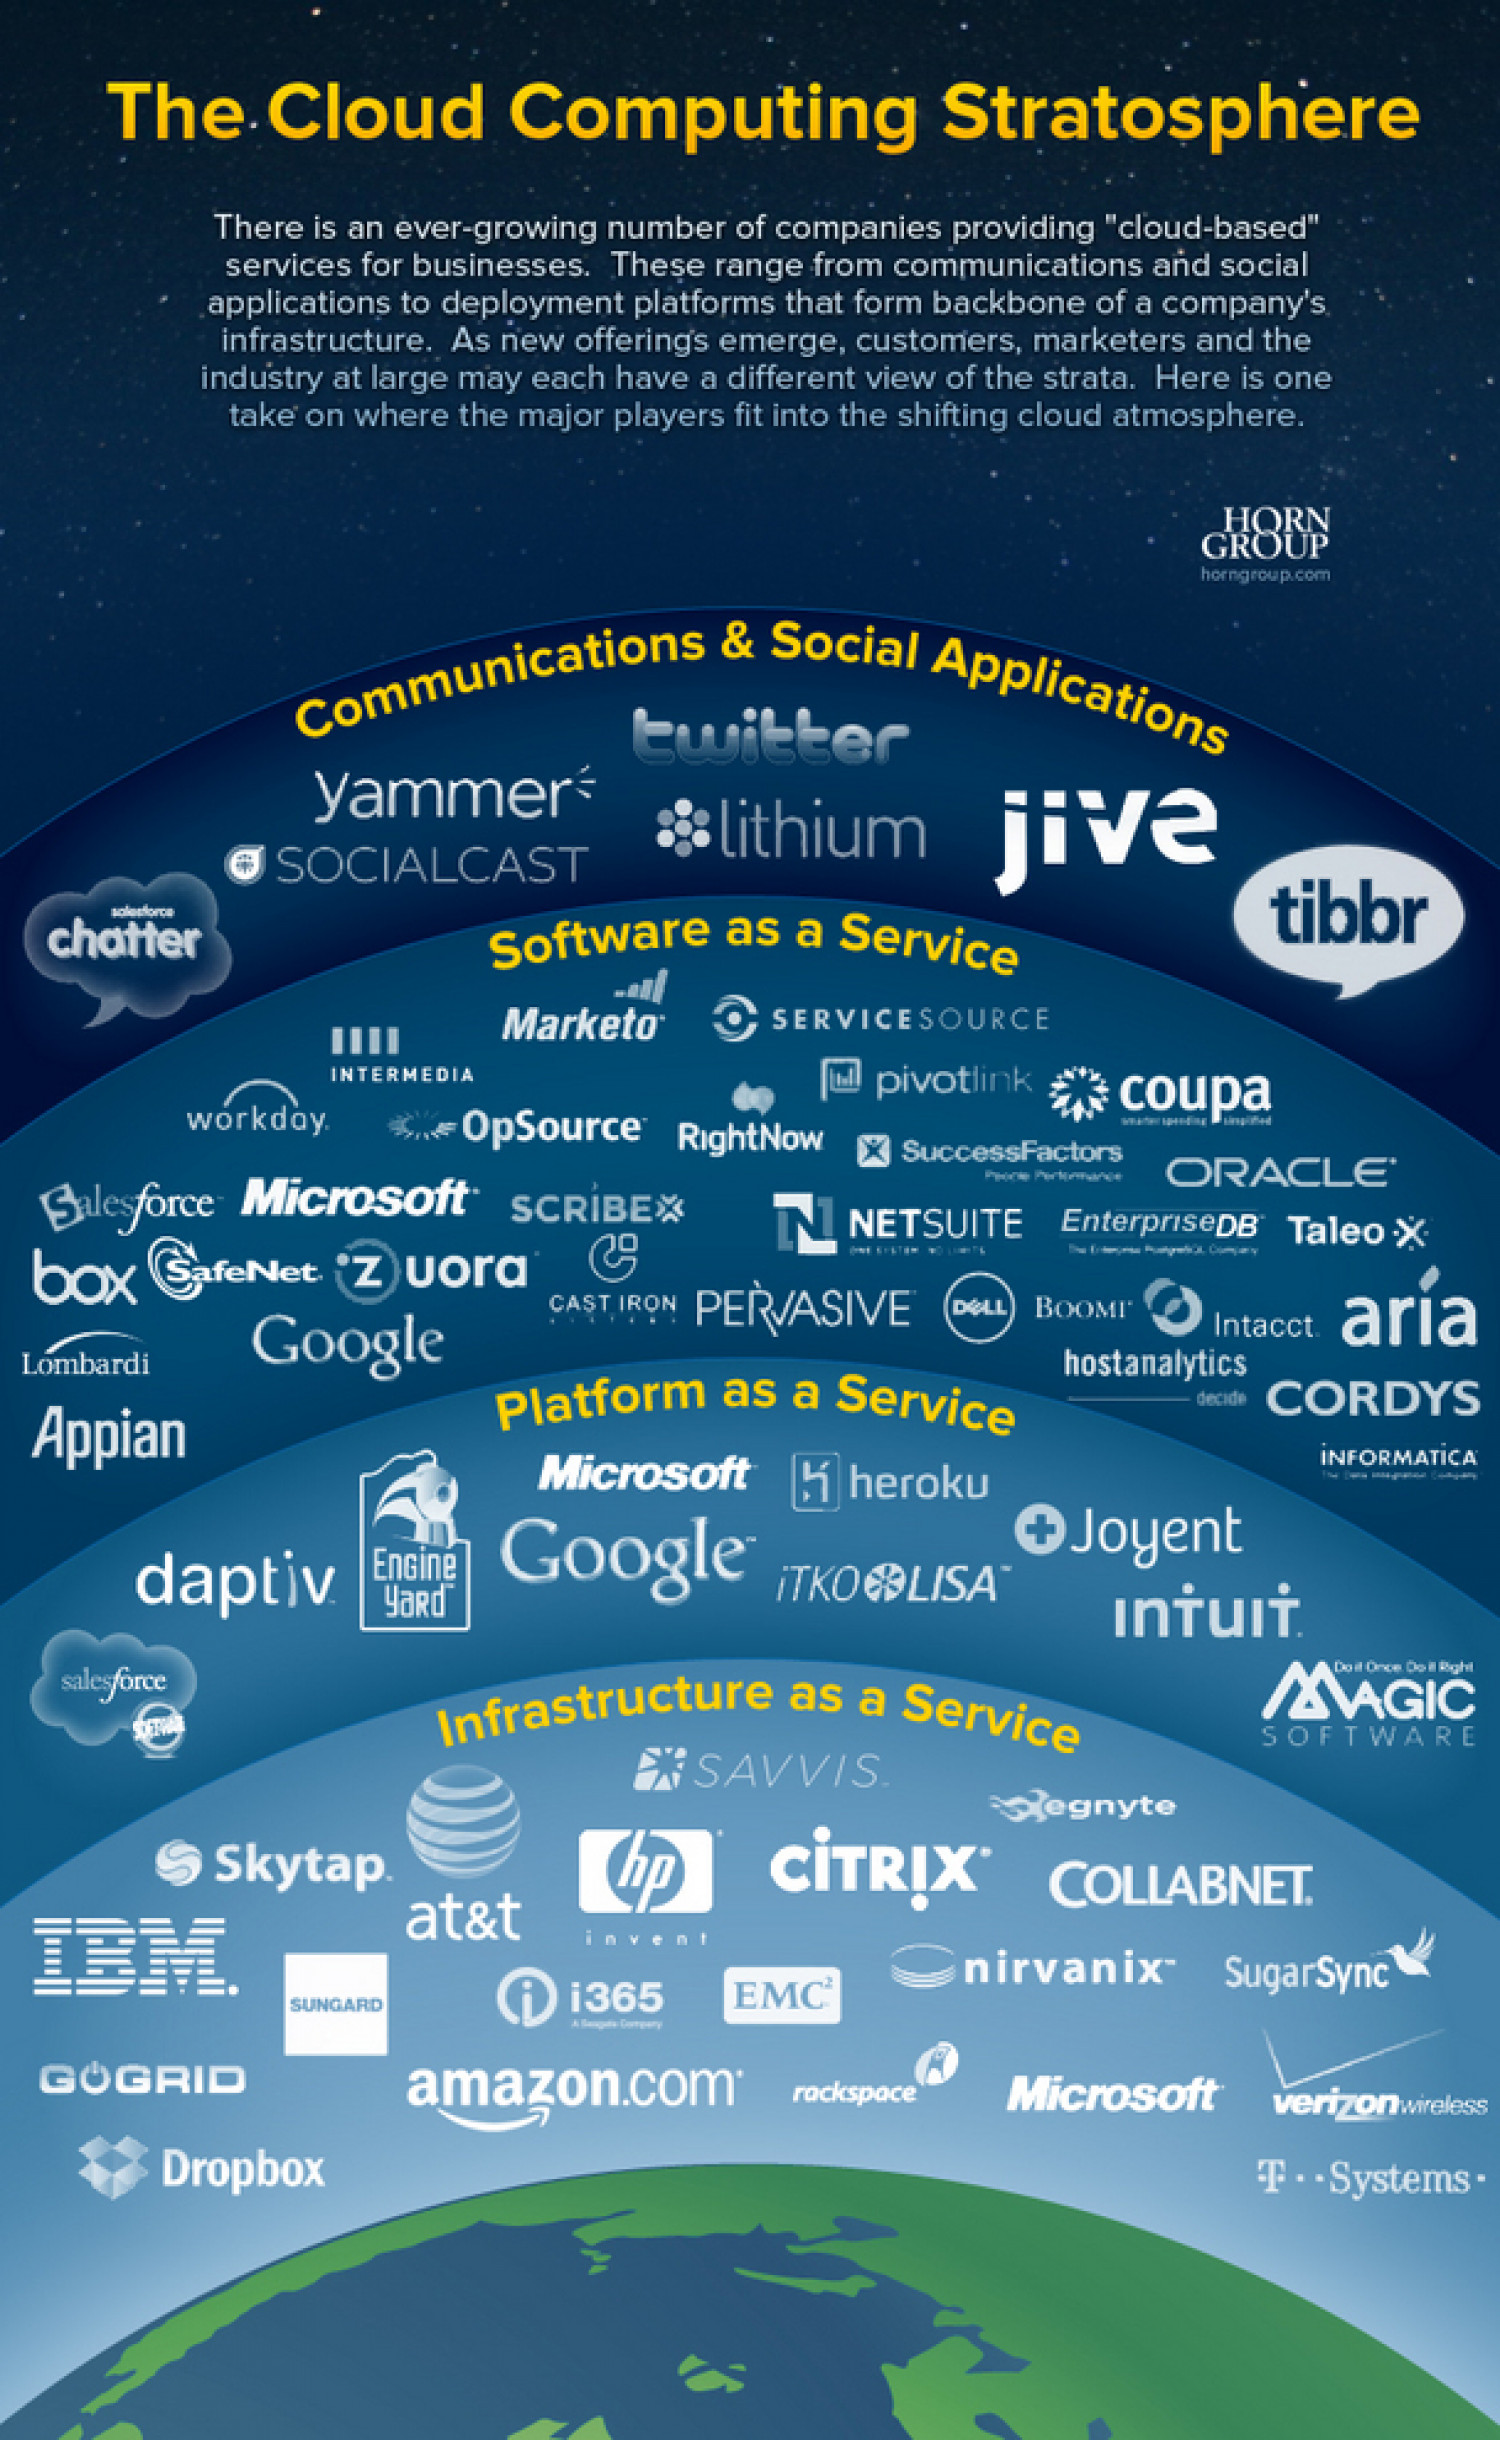 The Cloud Stratosphere Infographic